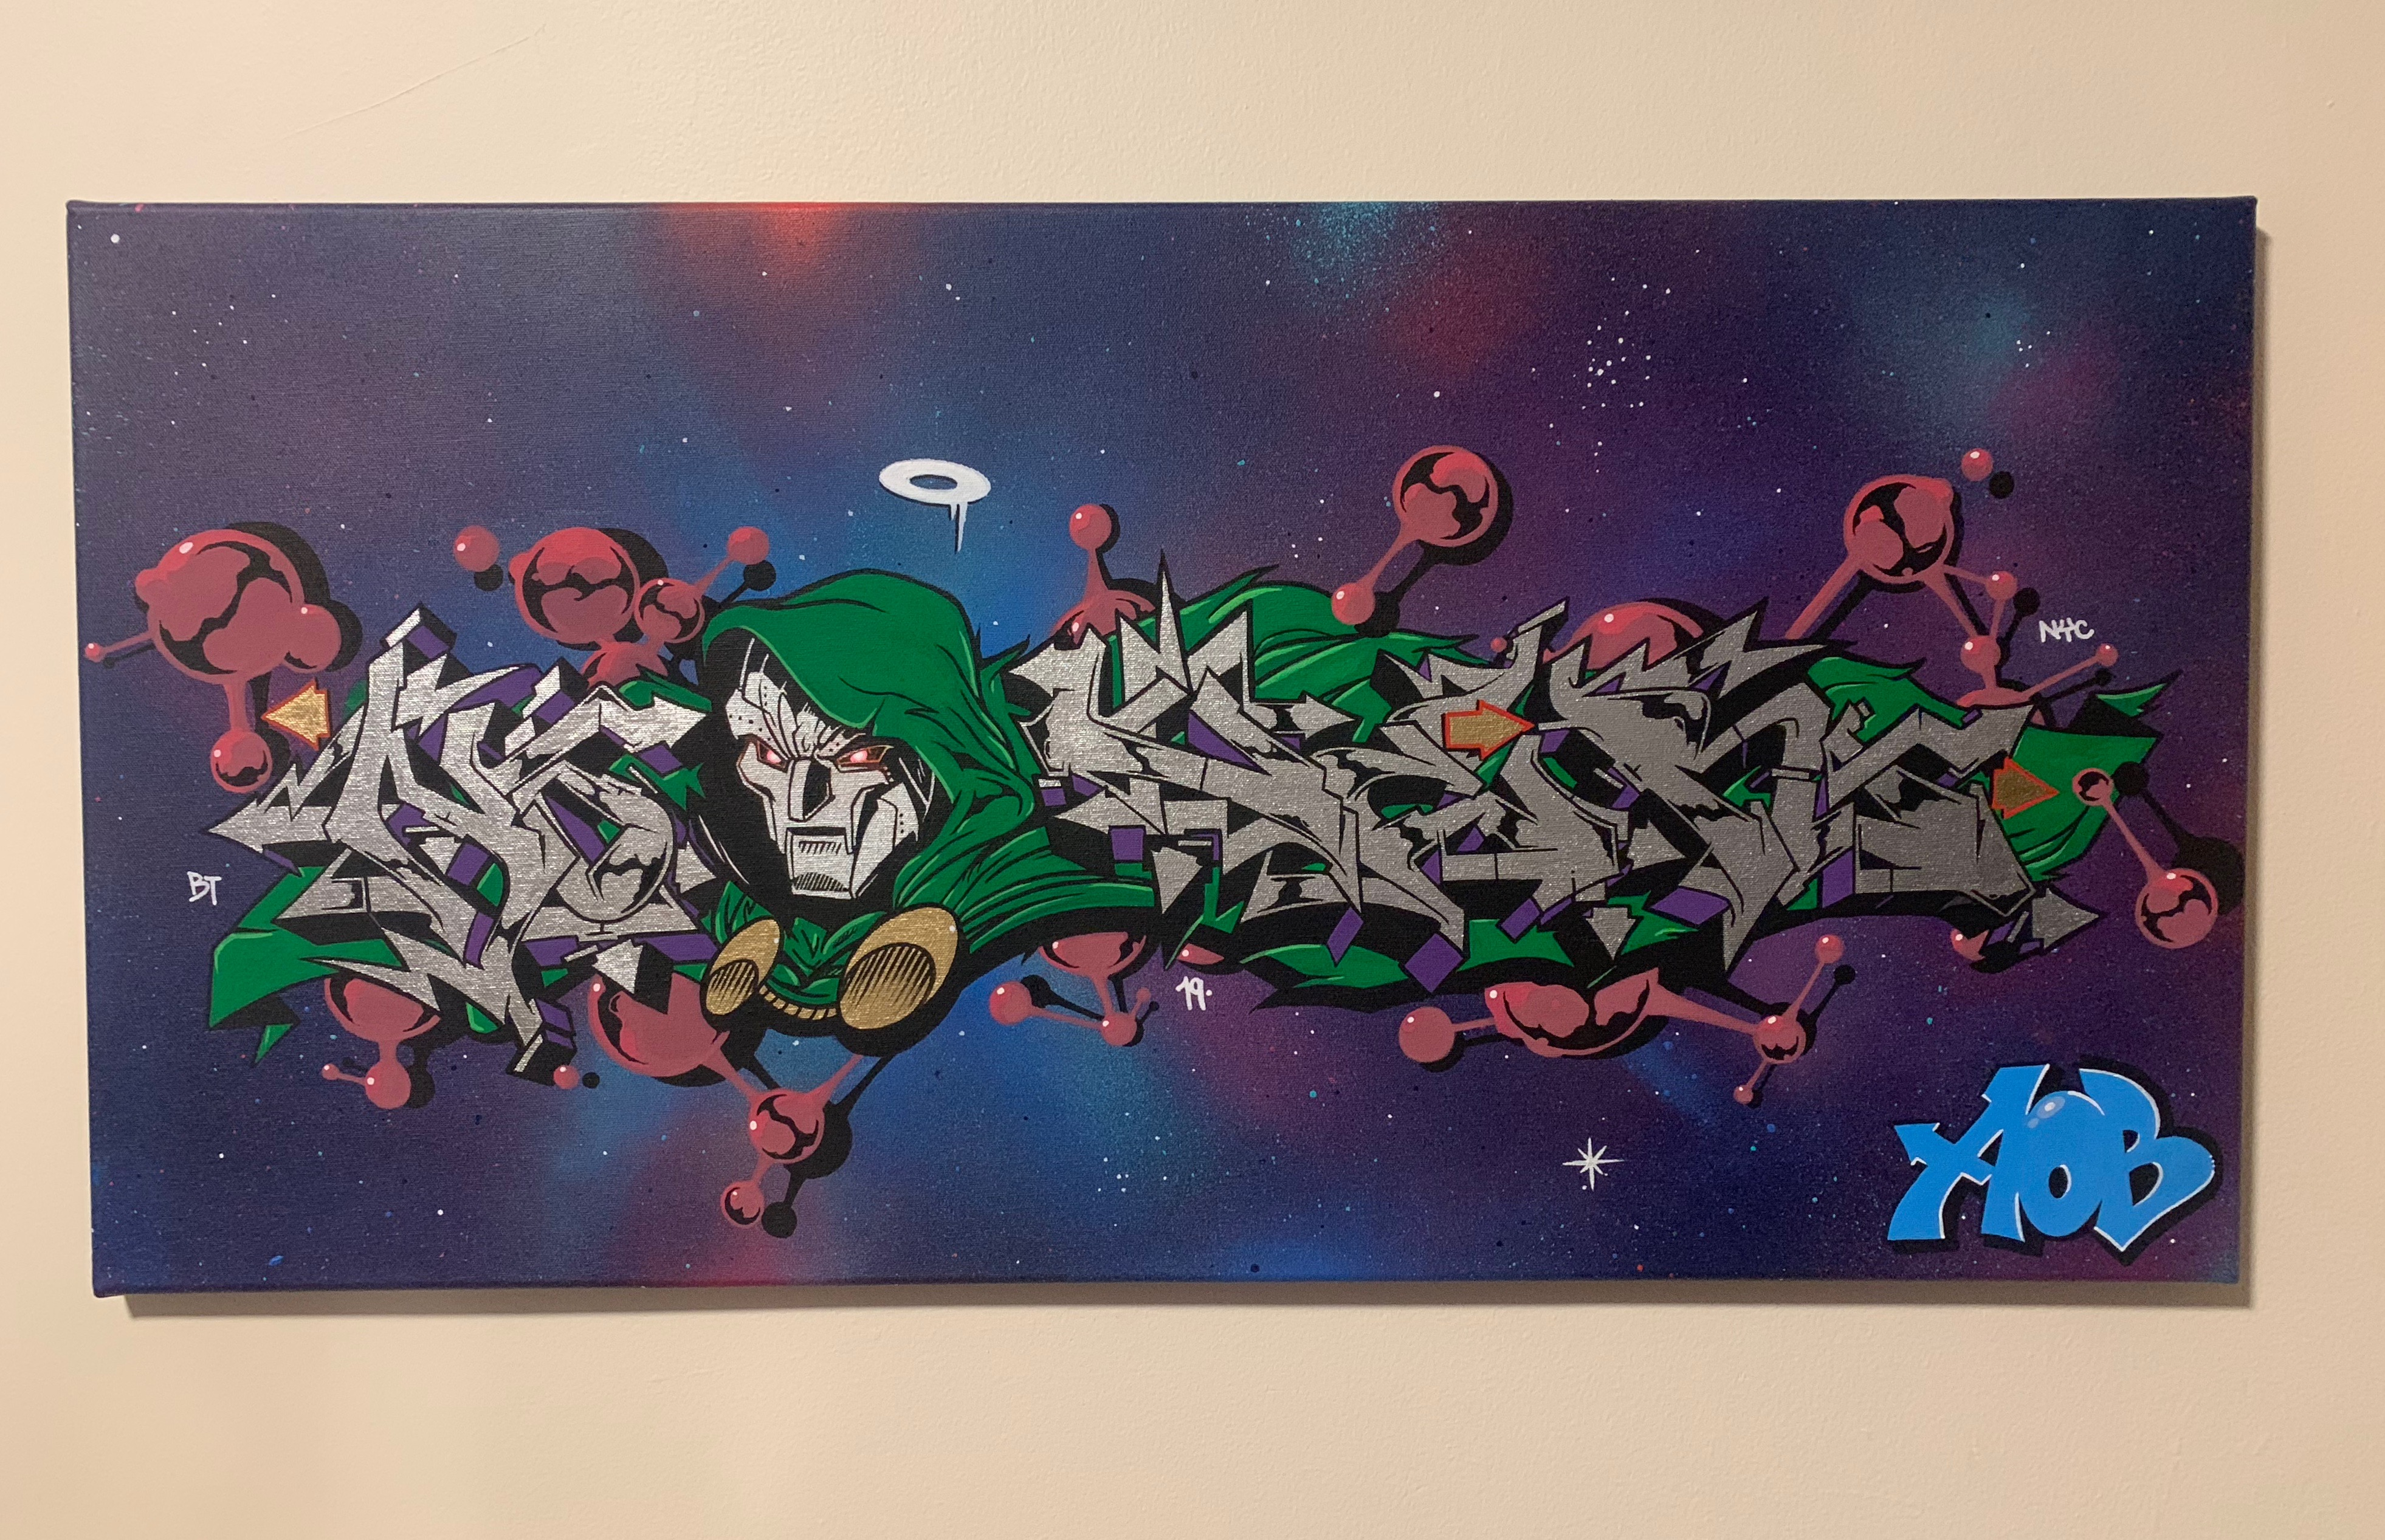 Doom x Nover, Markers and Spray Paint on Canvas. 2019.